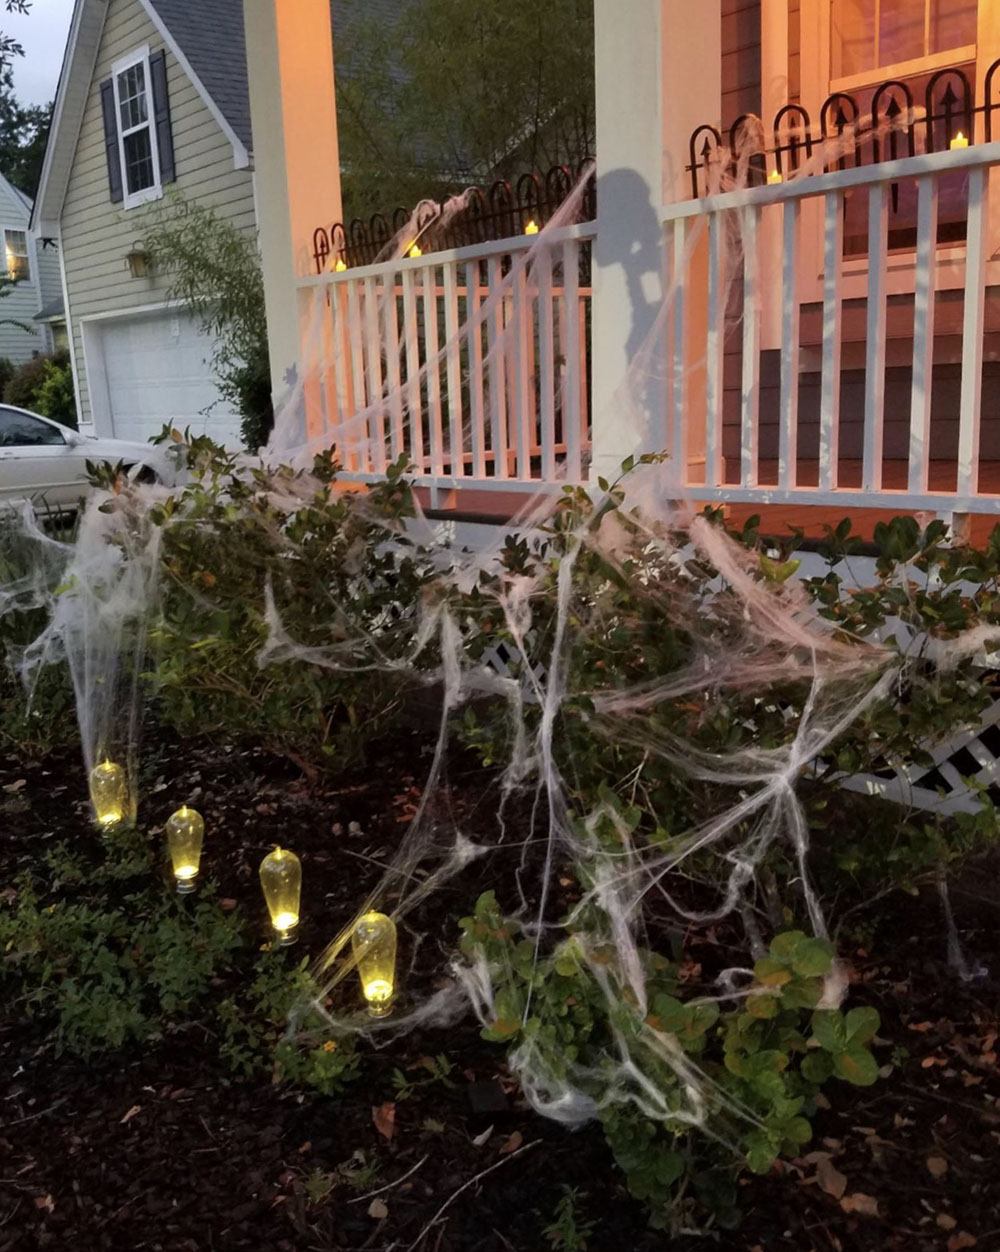 A row of bushes decorated with spider webs.